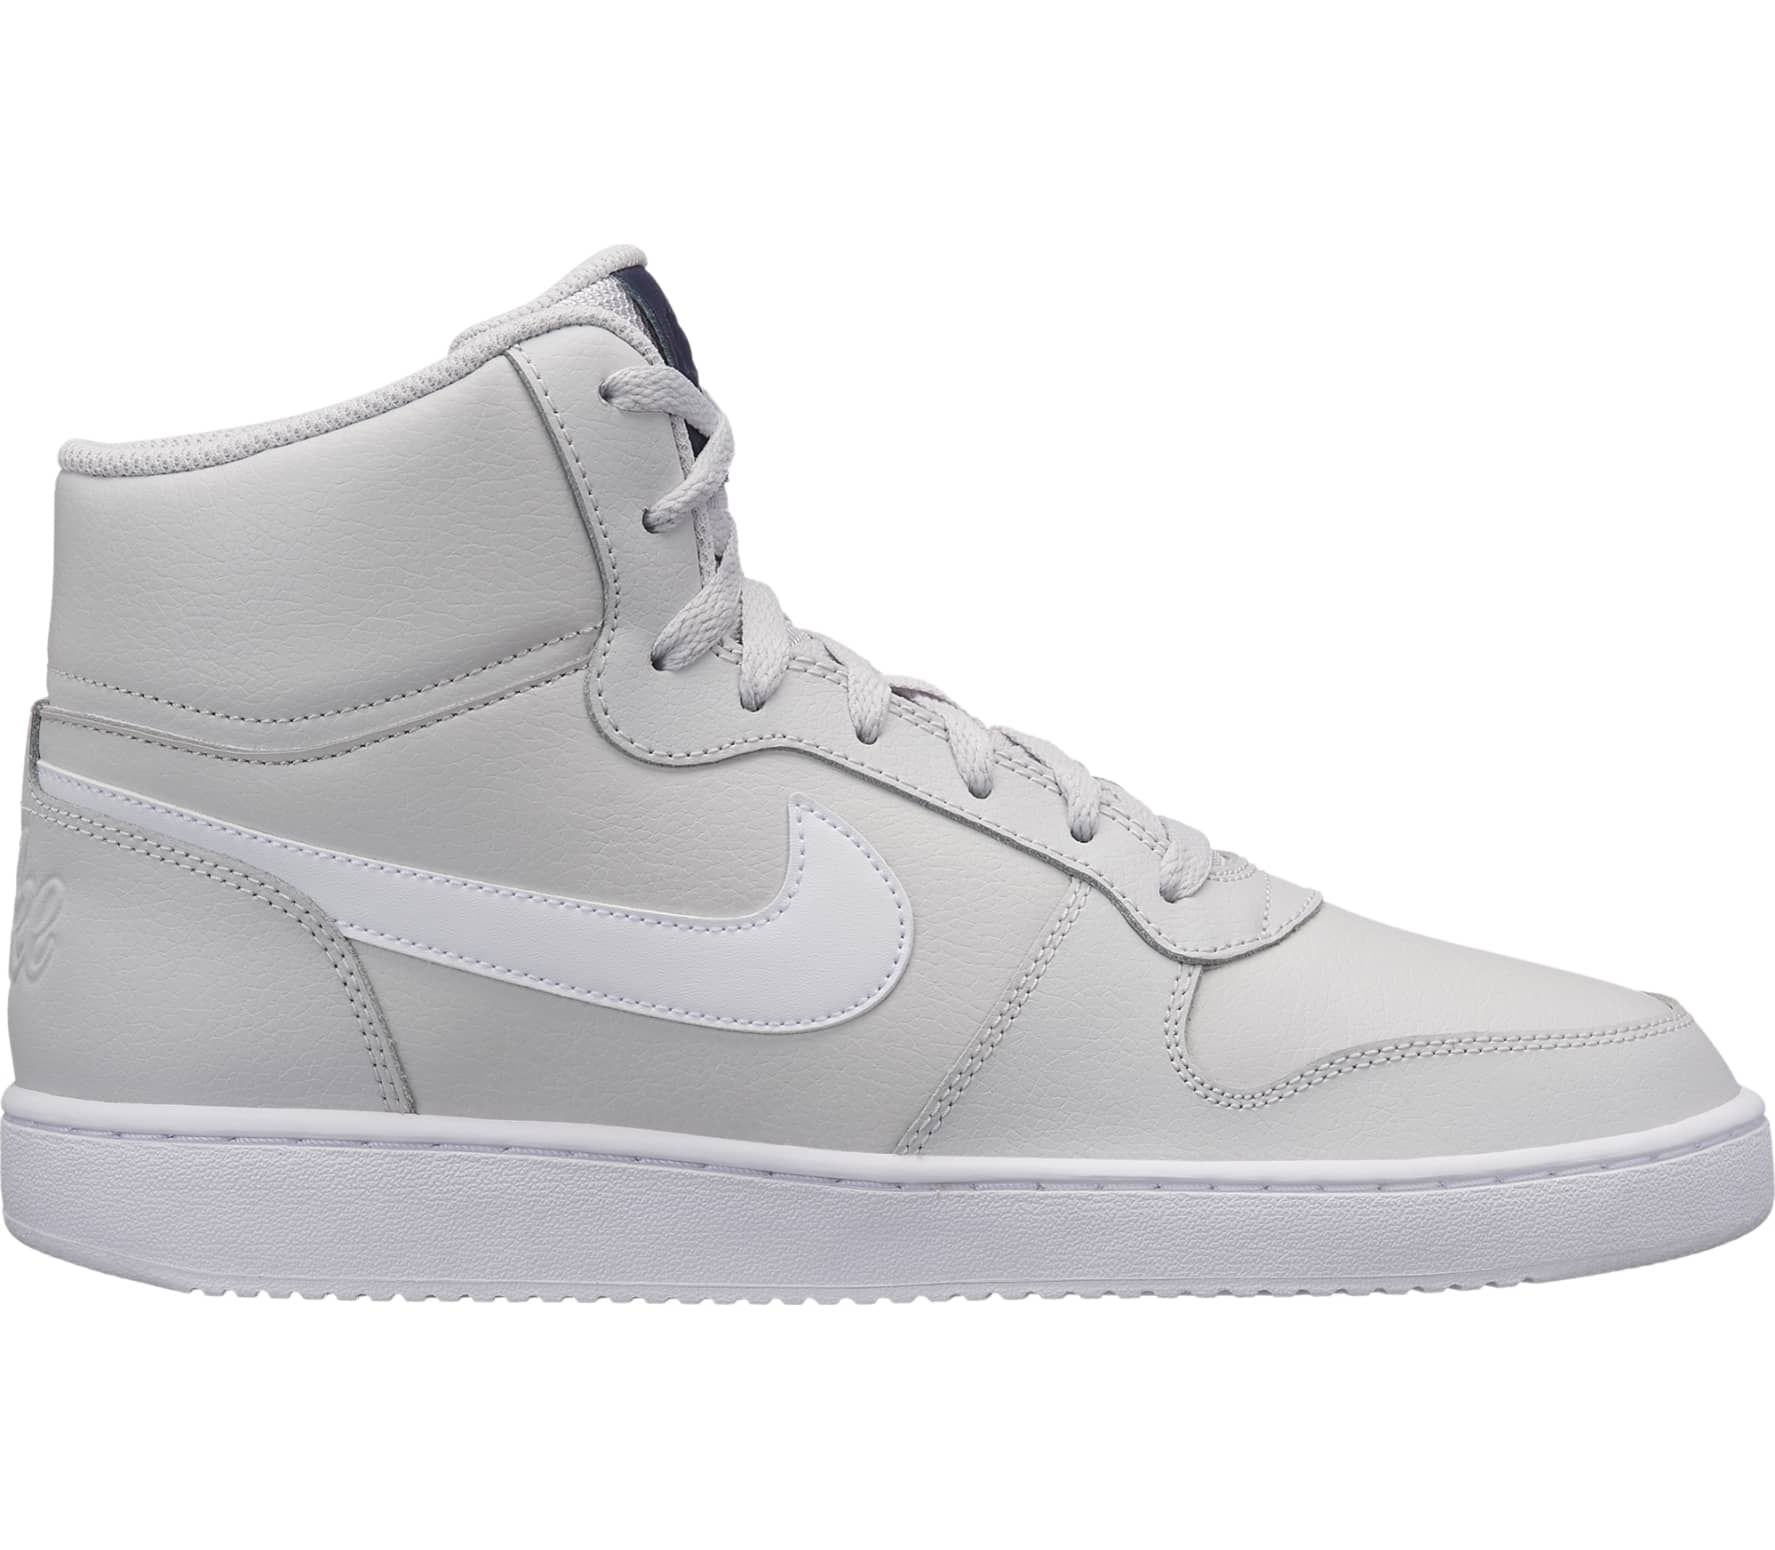 Details about Nike Ebernon Mid Hi Top Trainers Mens Athleisure Footwear Shoes Sneakers